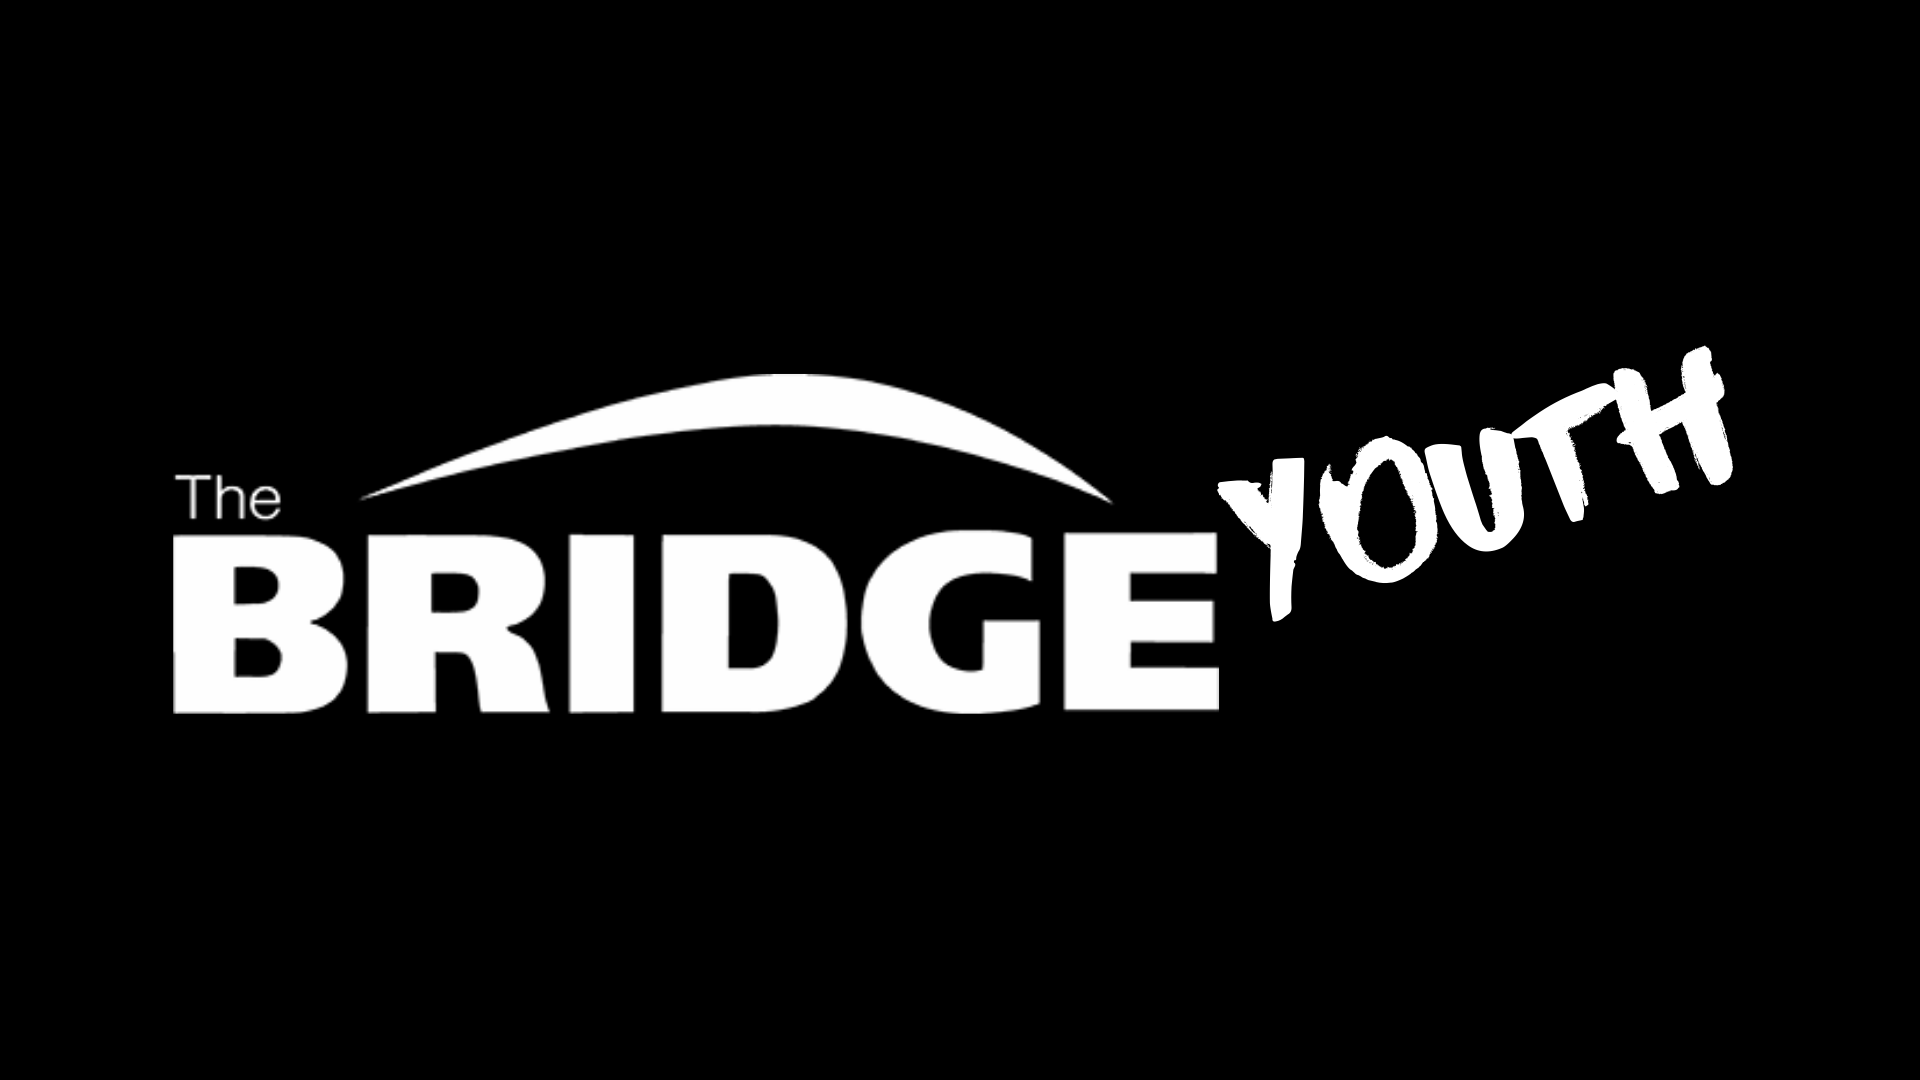 Jr. High and High School - BridgeYouth is for students in the 6th-12th grades. Weekly gatherings are on Sunday nights in addition to various other activities and events throughout the year.